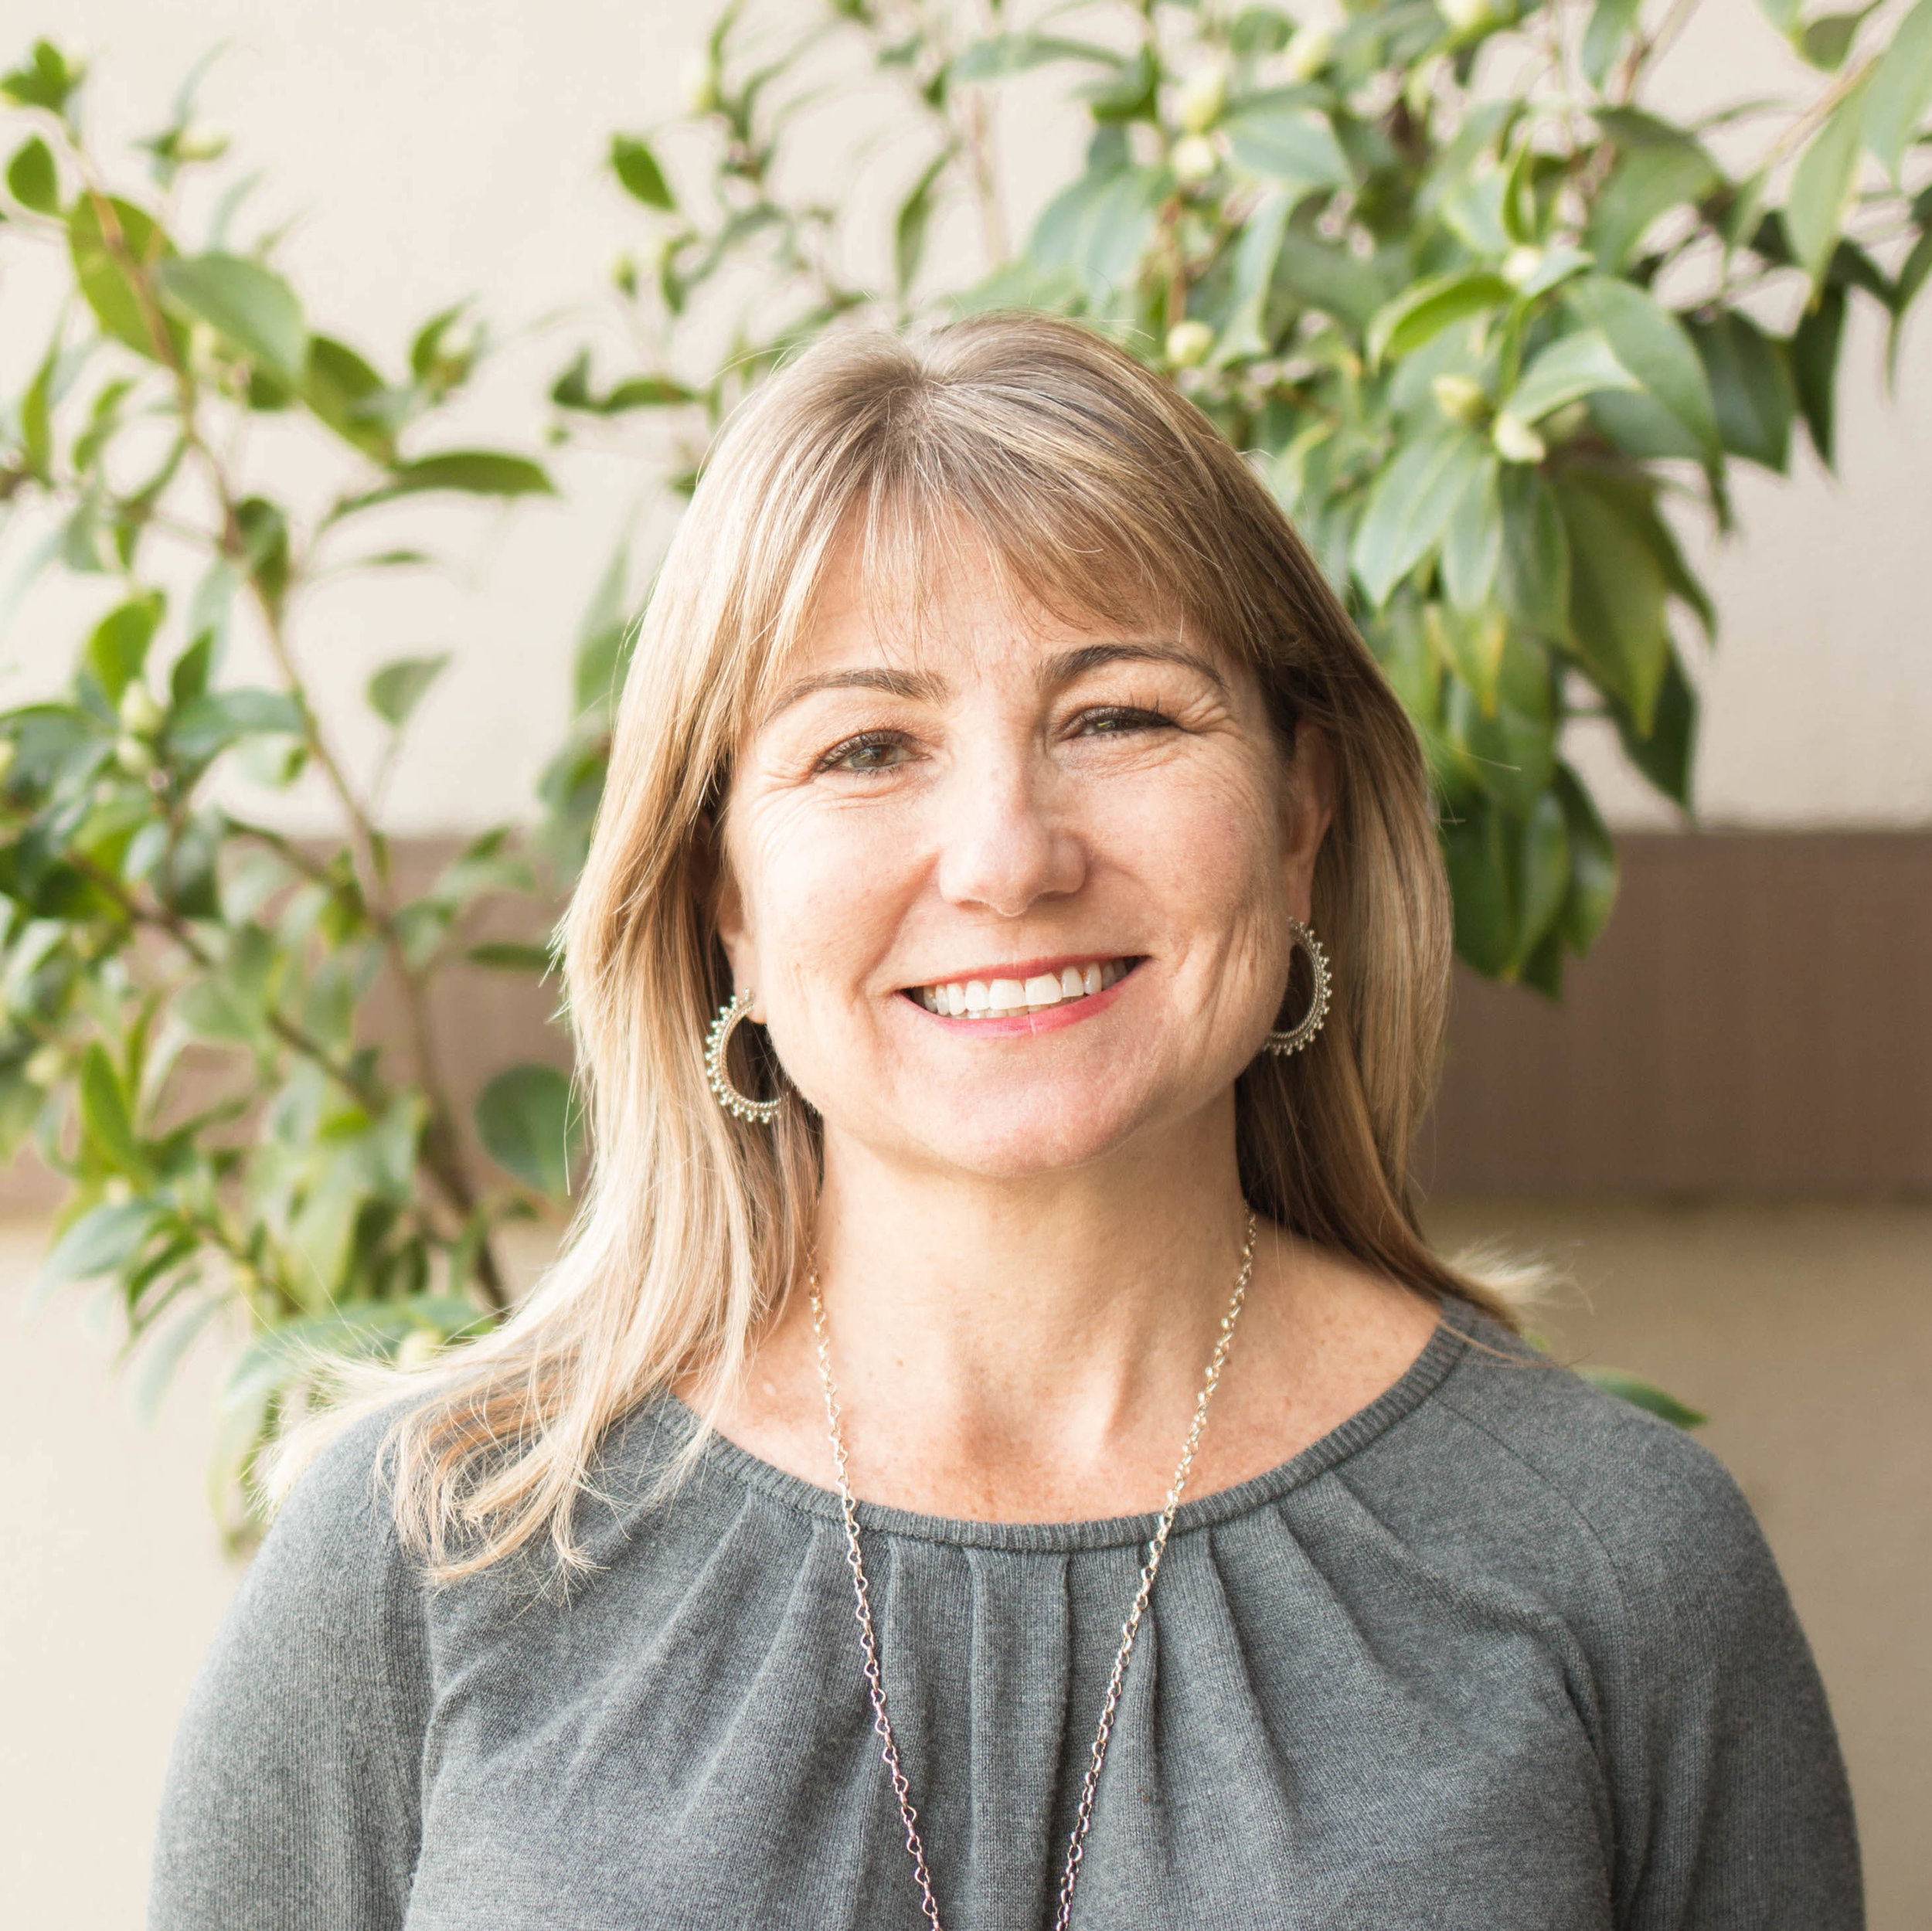 Michelle Record Contini, M.D.  Dr. Michelle grew up in many places including Hawaii, American Samoa, Olympia, WA, and Southern California. When she is not at work she is busy raising her four boys with Dr. Pete. She enjoys running, Crossfit, reading, baking and volunteering in her children's classrooms.    College  University California, Irvine B.S. in Biology   Medical School  University of California, San Francisco   Internship/Residency  University of California, San Francisco    Certification  American Board of Pediatrics, 2000, 2007 Fellow, American Academy of Pediatrics   Memberships  Fellow, American Academy of Pediatrics